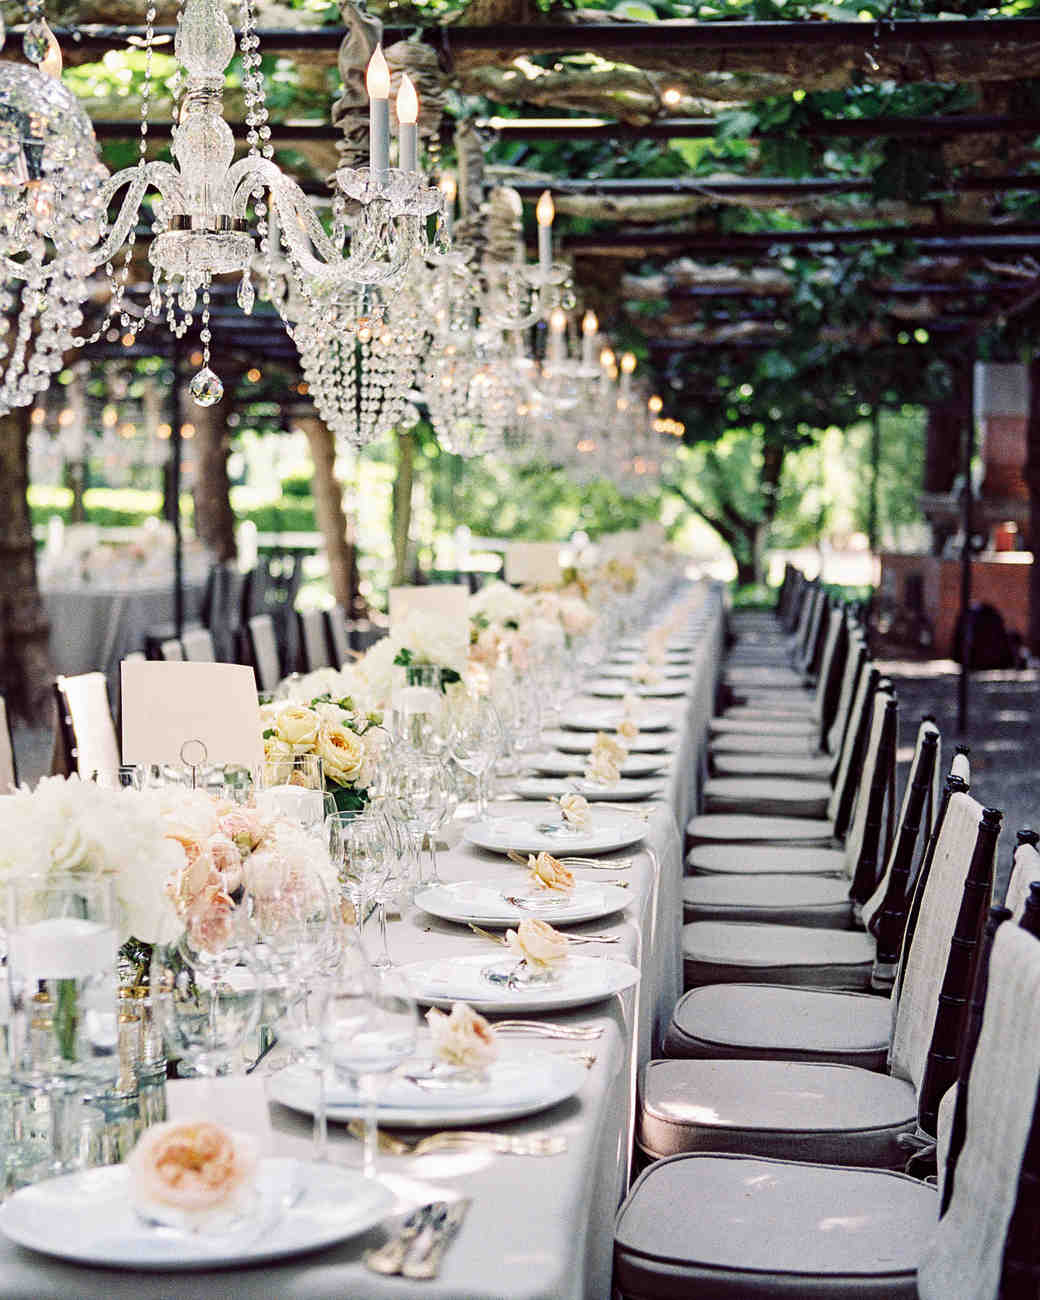 chandeliers over outdoor reception table